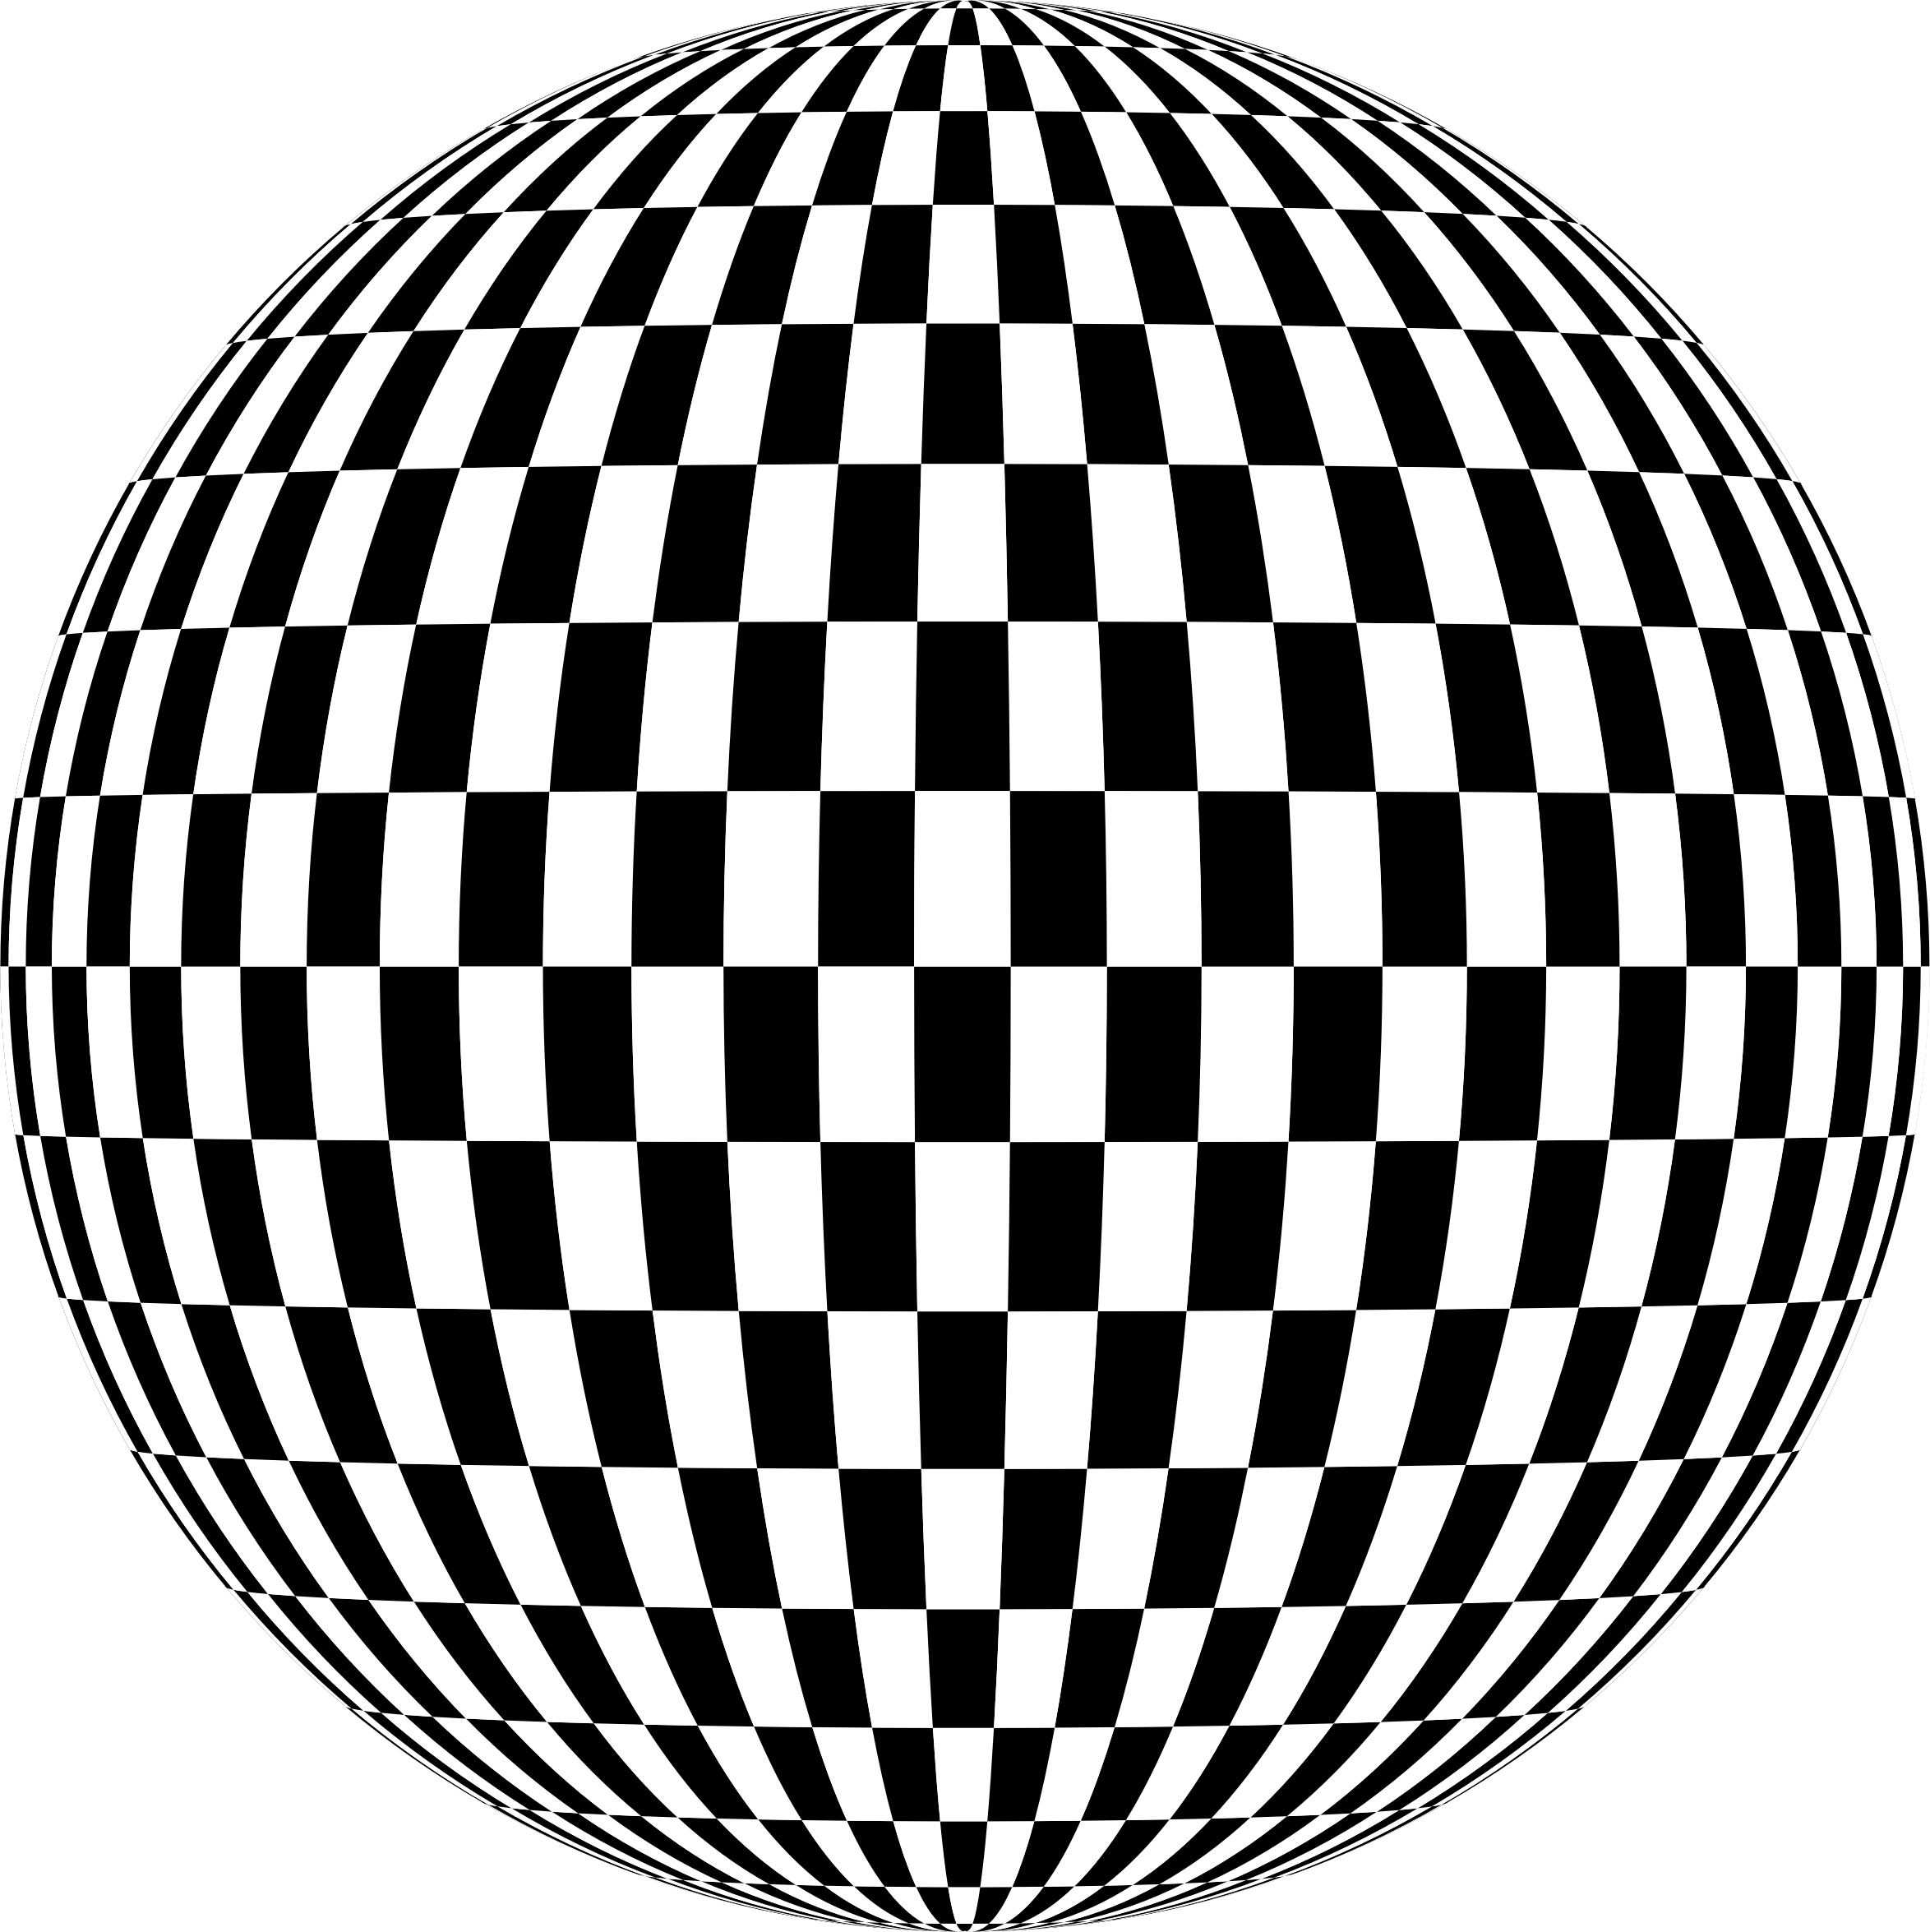 Checkered Sphere by GDJ